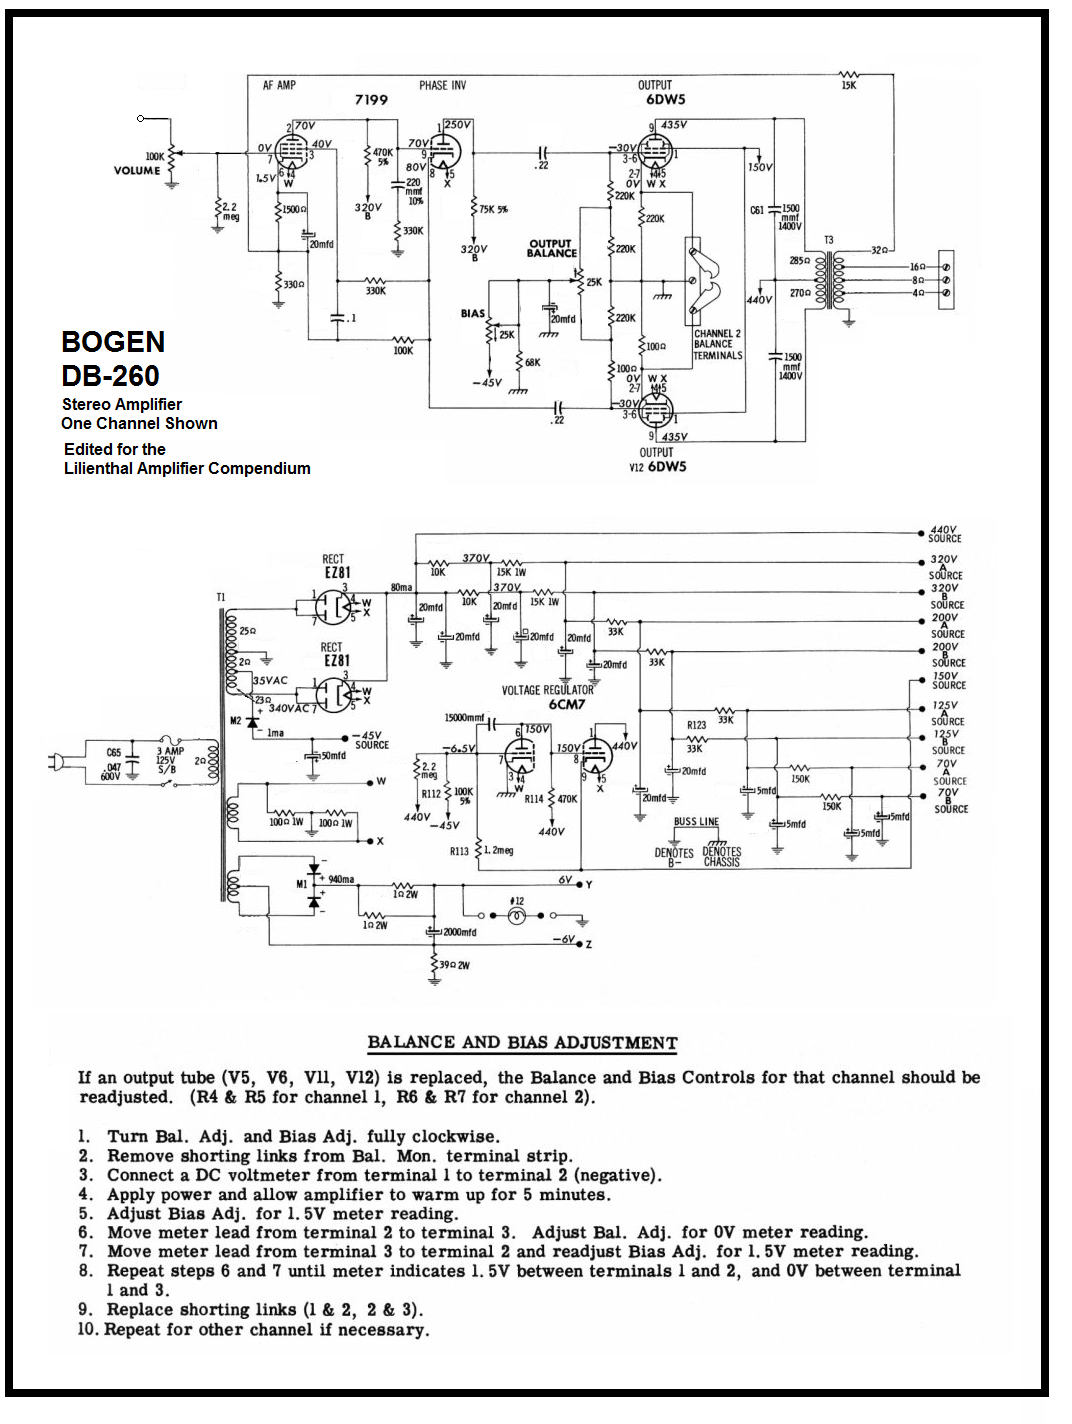 Bogen Intercom Systems Wiring Diagram Free For You Nutone Paging System Imageresizertool Com Schematic Aiphone Manual